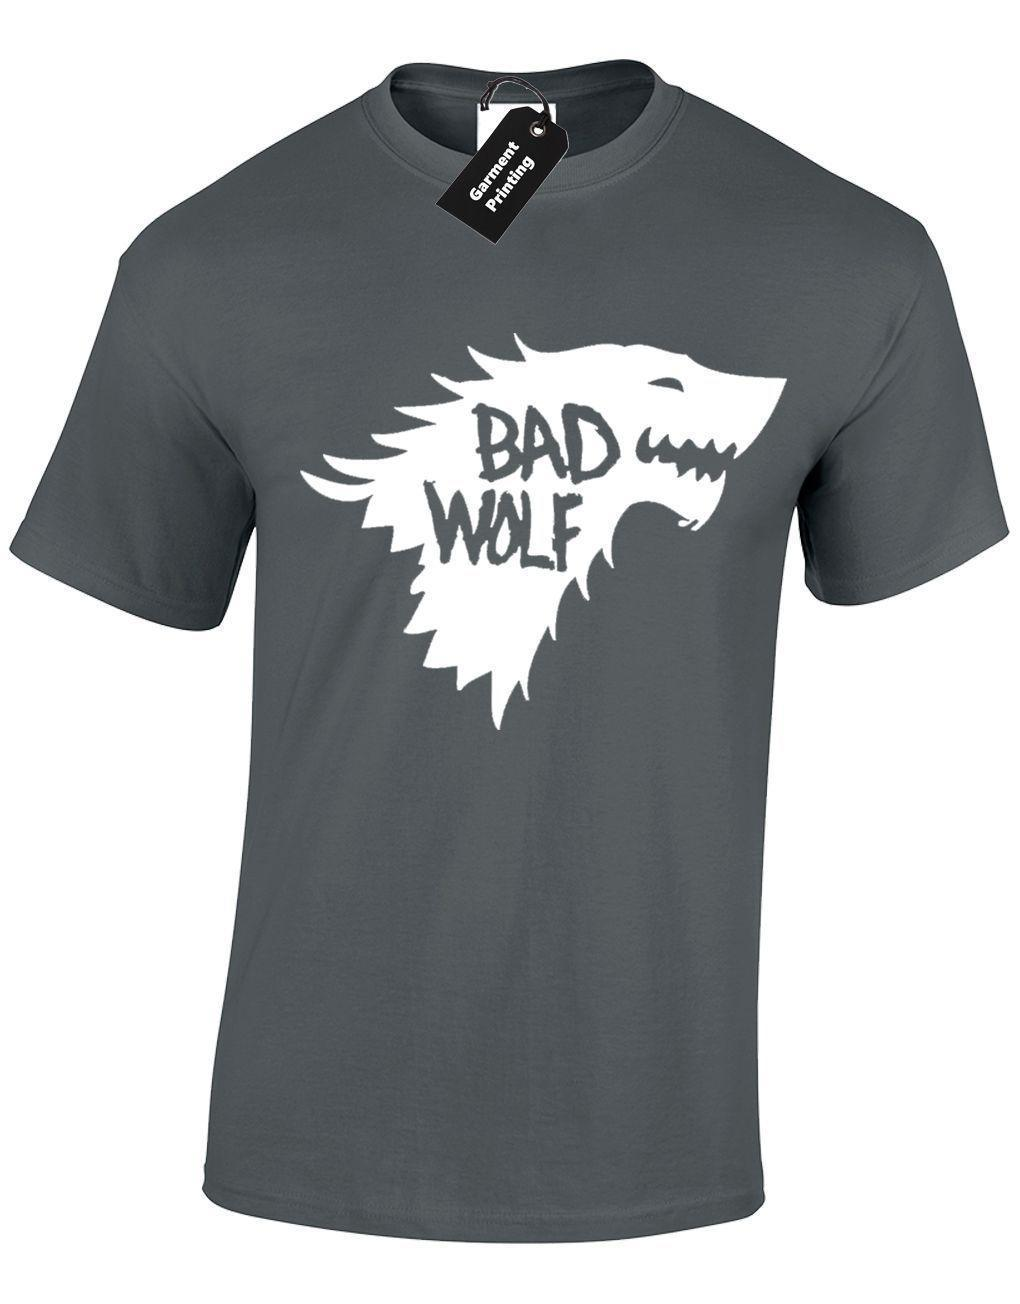 492c7a33c330 BAD DIRE WOLF MENS T SHIRT GHOST DRAGON CROWS NORTH KING WALL CASTLE BLACK  NEW Dirty T Shirts Graphic Tee Shirts From Linnan006